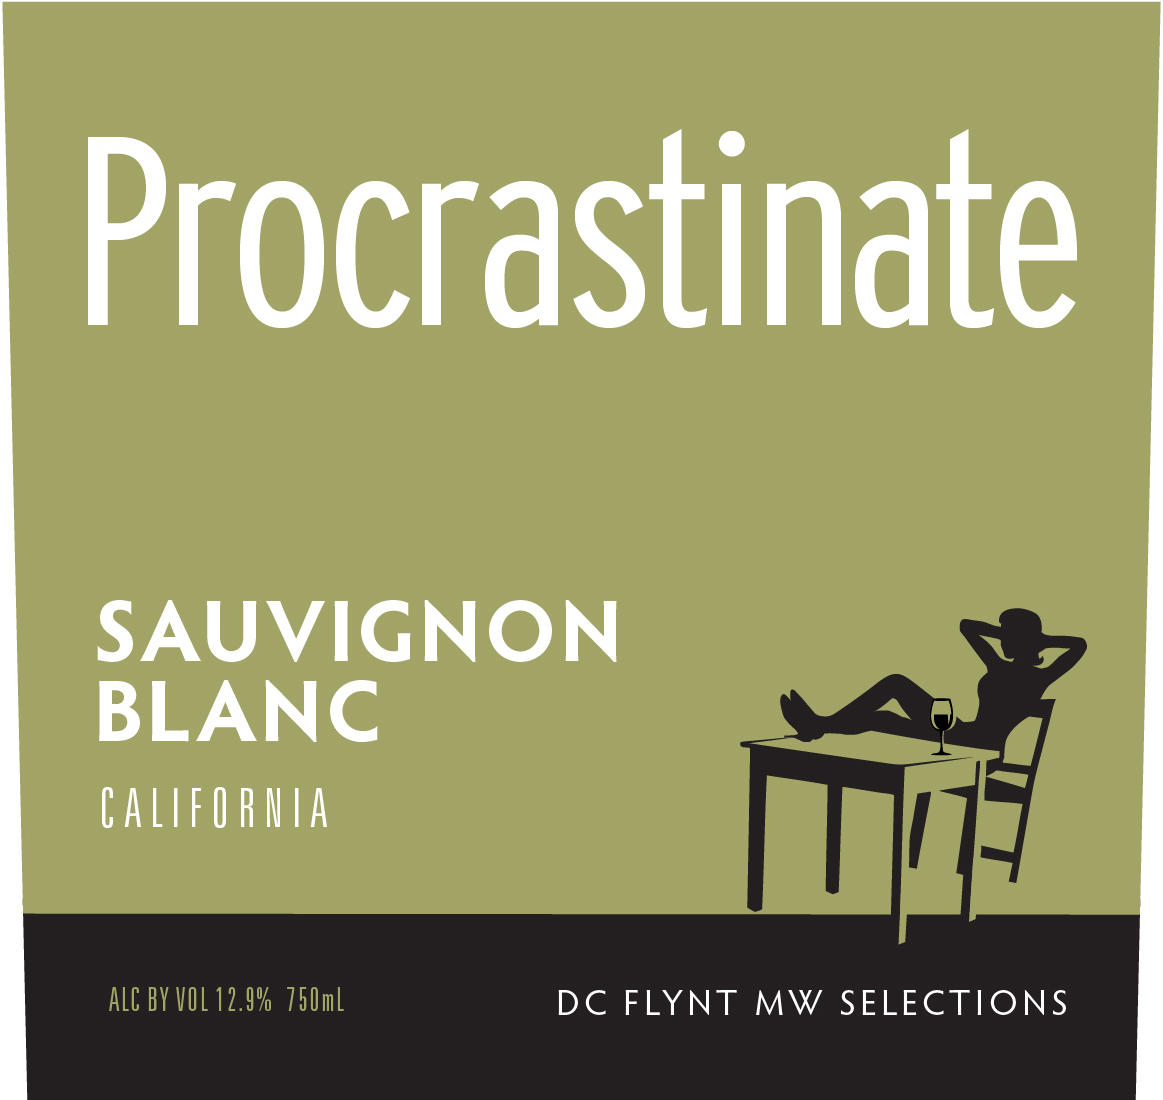 This Sauvignon Blanc is vibrantly aromatic with sweet notes of lime and lemon grass surrounding a mid-palate of ruby grapefruit, peach and citrus peel that builds to a juicy finish of tangerines.  A terrific match to broiled flounder or sole, gulf oysters, spicy venison sausage or grilled eggplant, Portobello, and golden peppers.